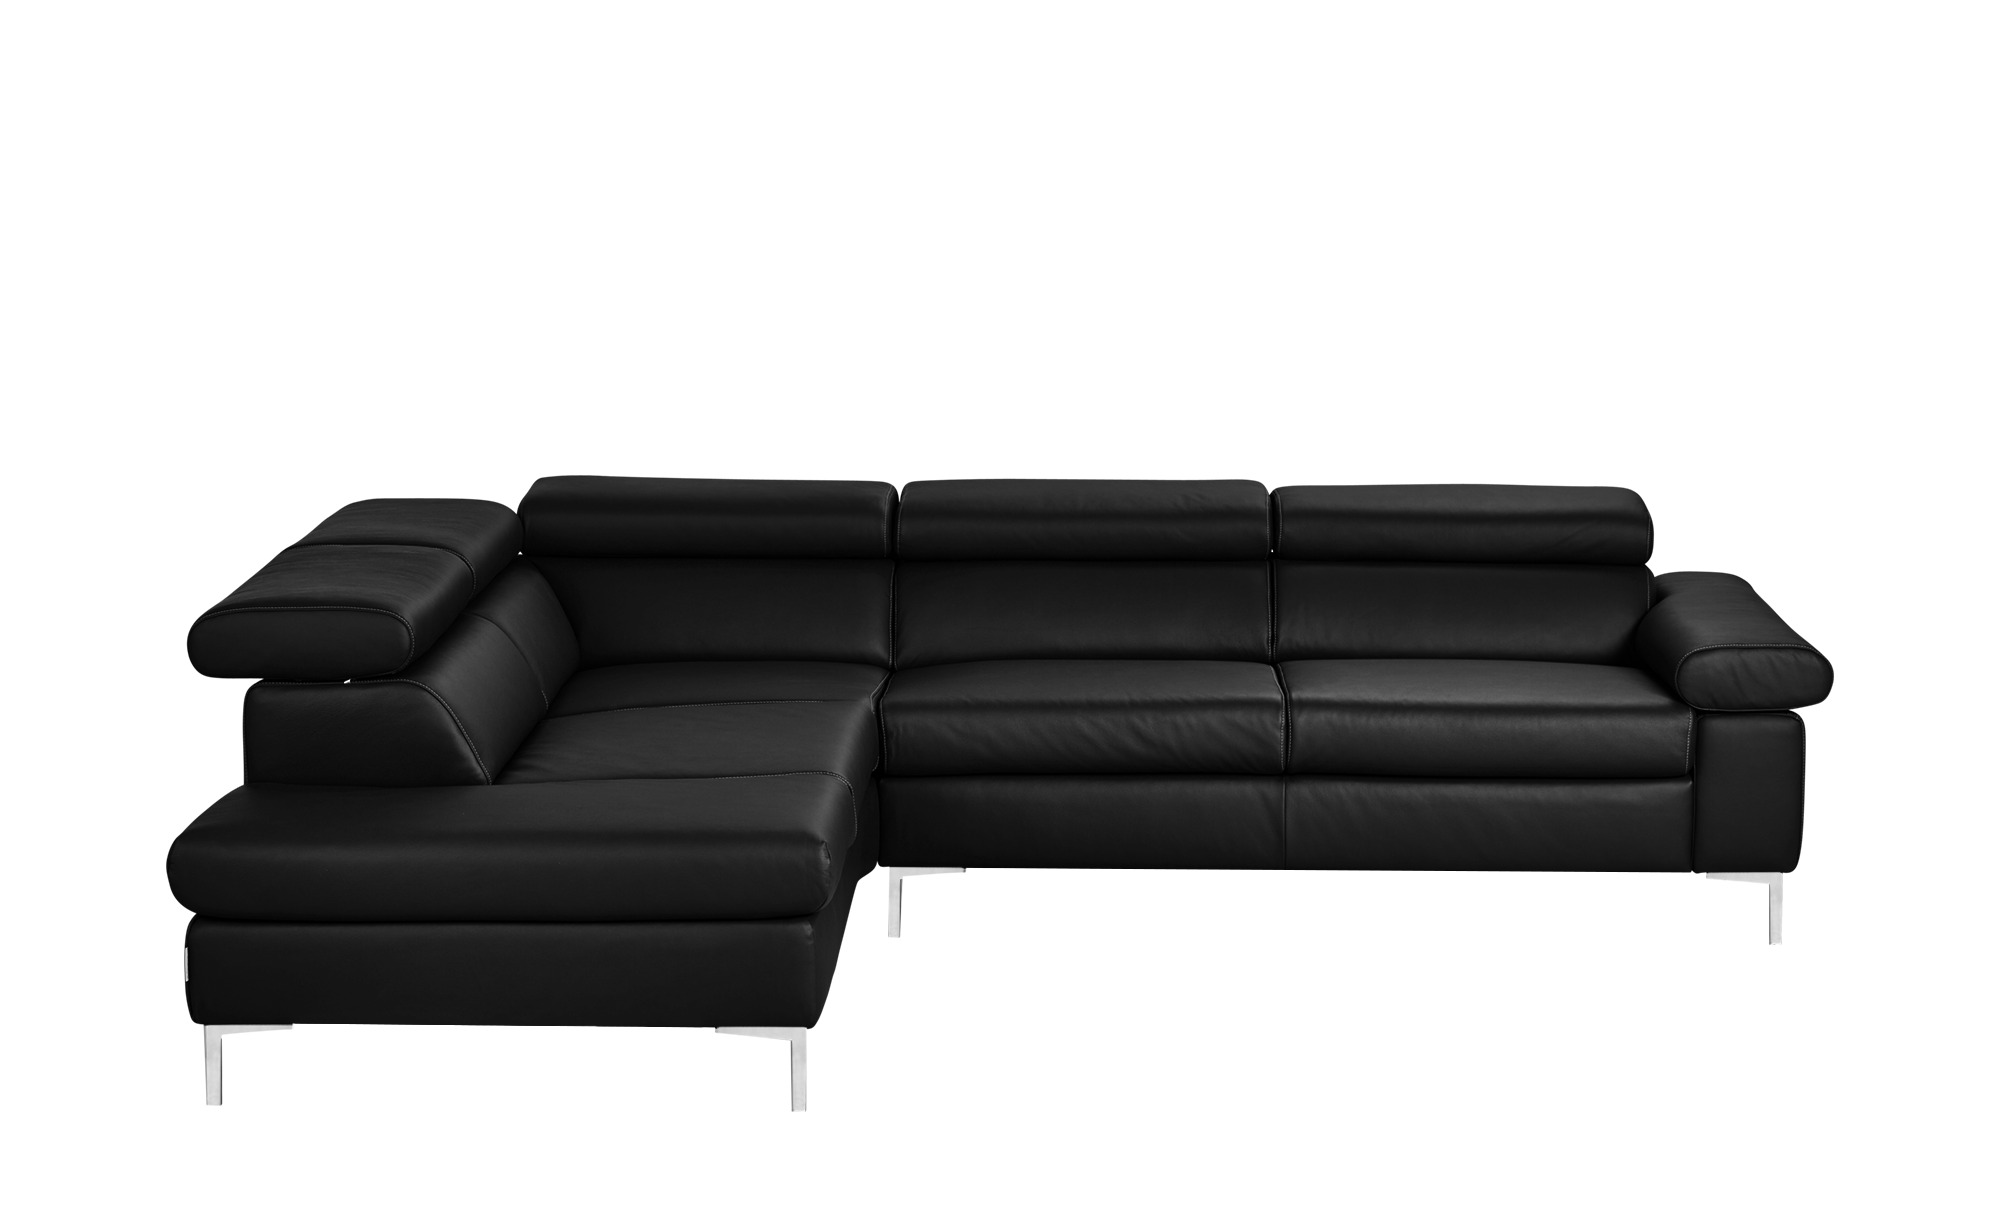 ecksofa arturo breite h he 70 cm schwarz online kaufen bei woonio. Black Bedroom Furniture Sets. Home Design Ideas